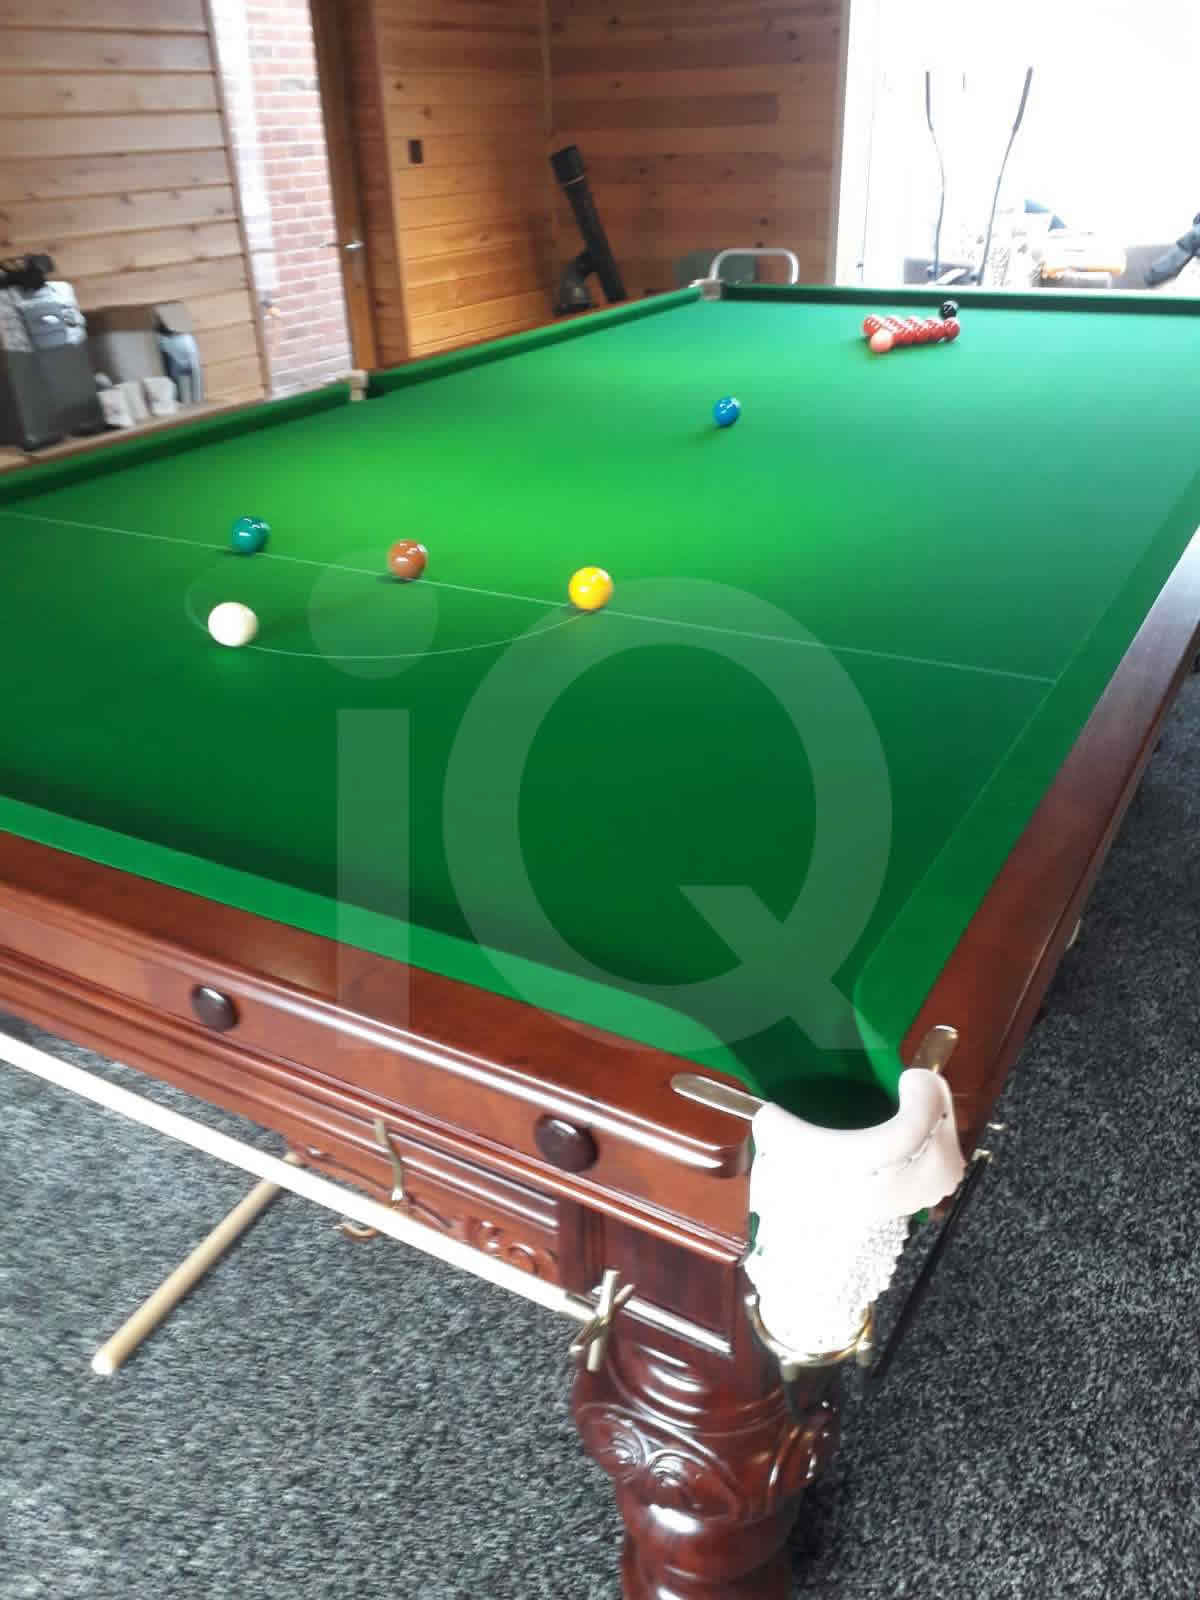 Recent Recover of a snooker table by IQ